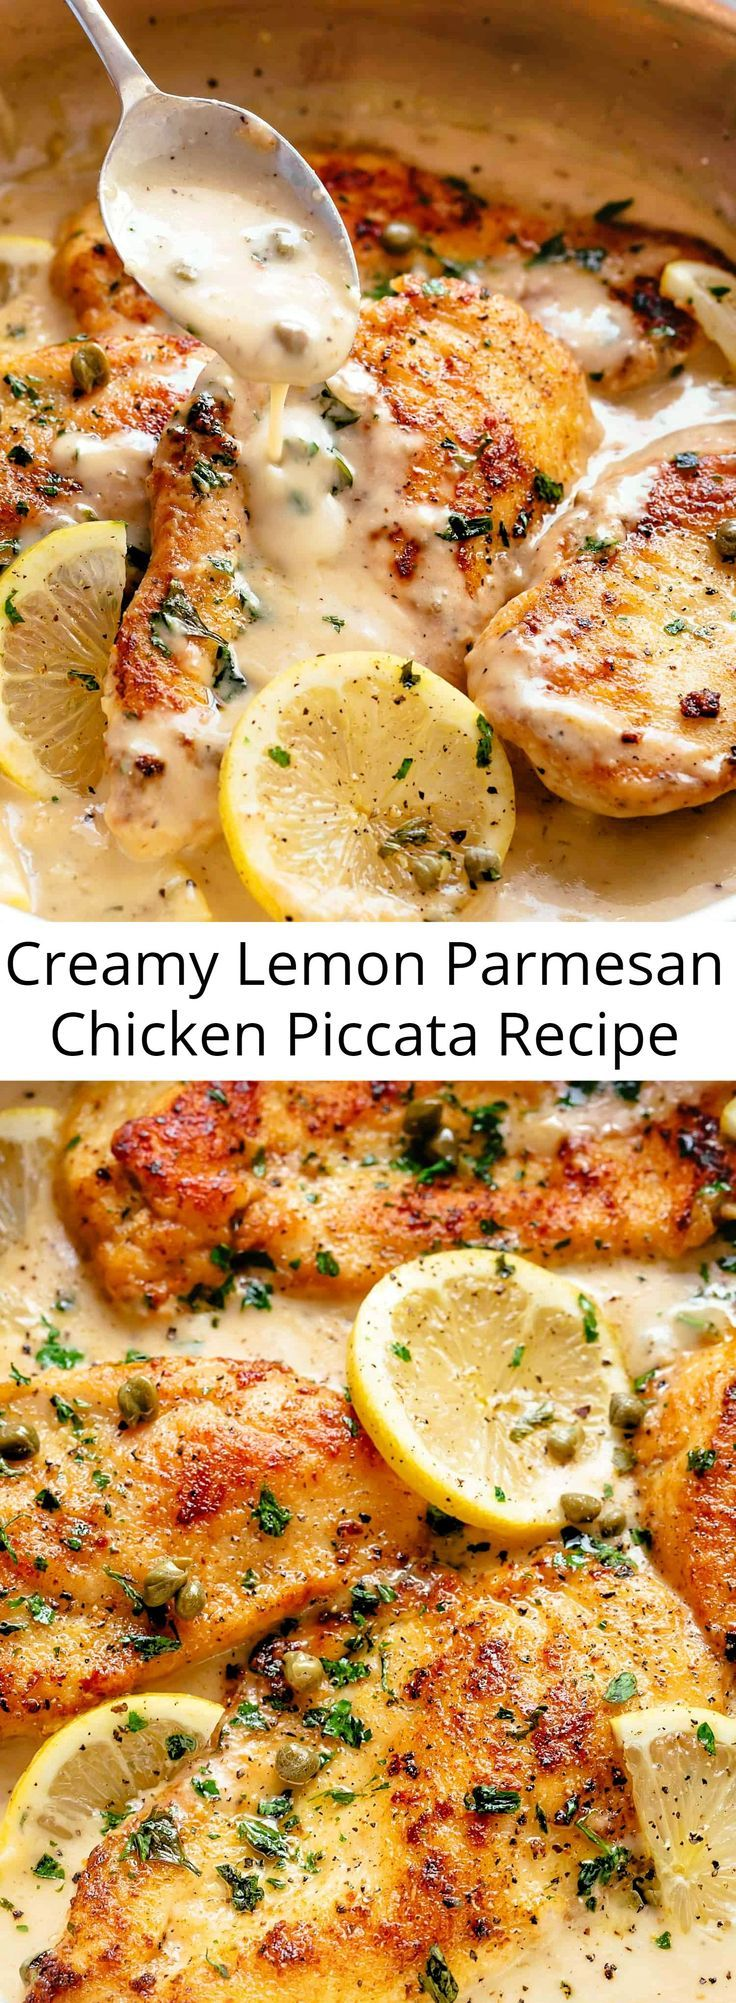 The ultimate in gourmet comfort food with parmesan cheese, garlic and a creamy l...